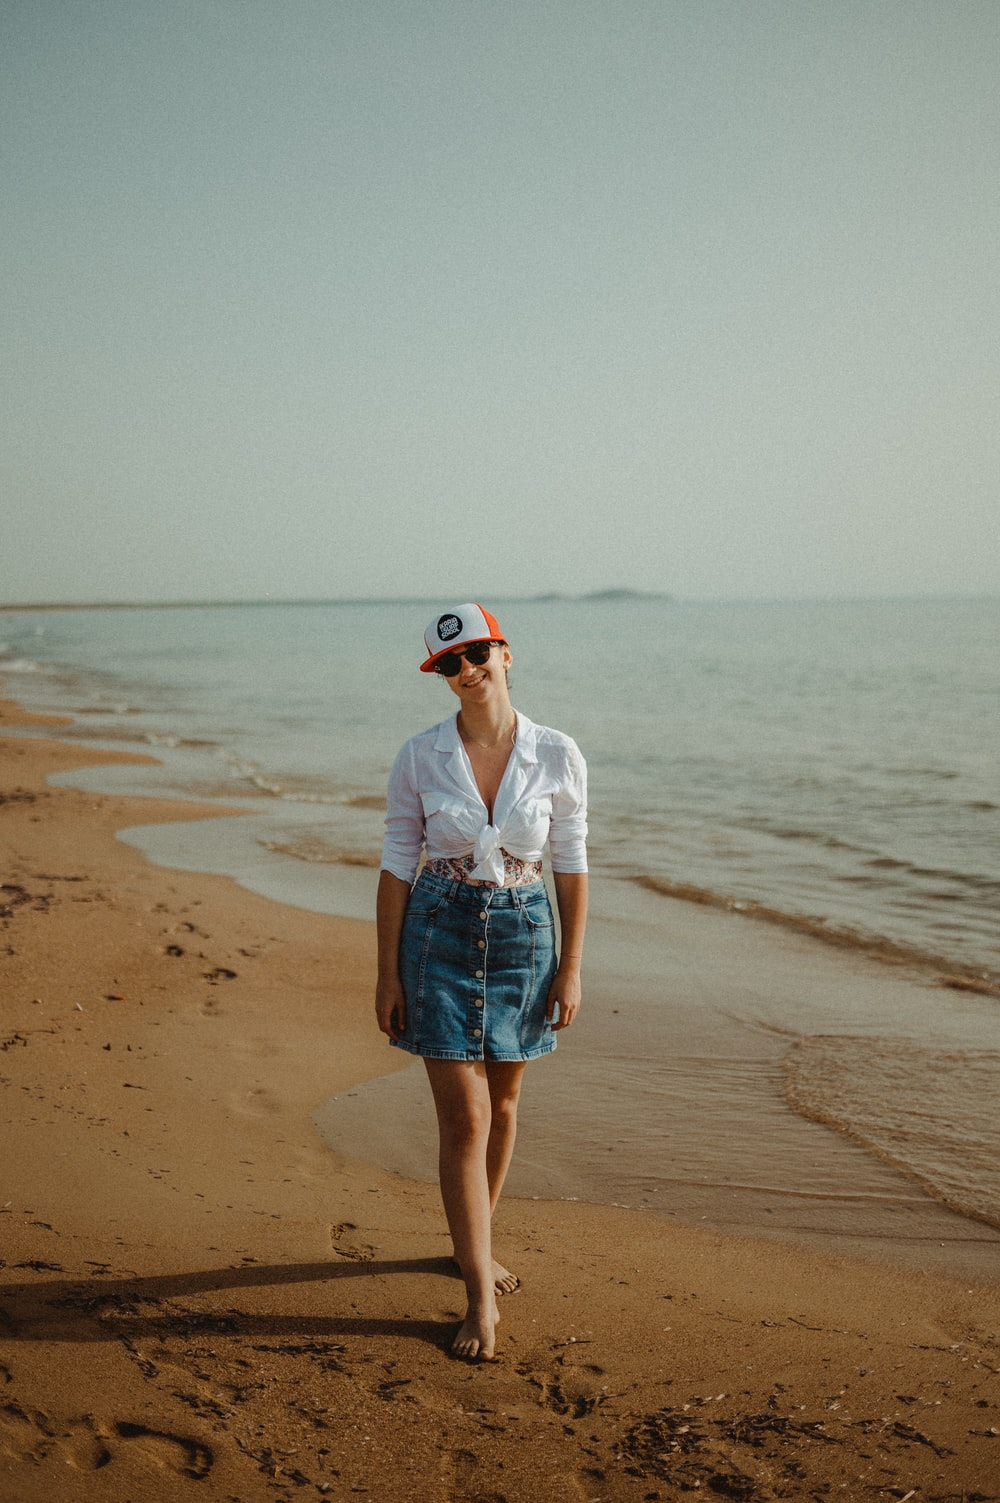 woman in white shirt and blue denim shorts standing on beach during daytime